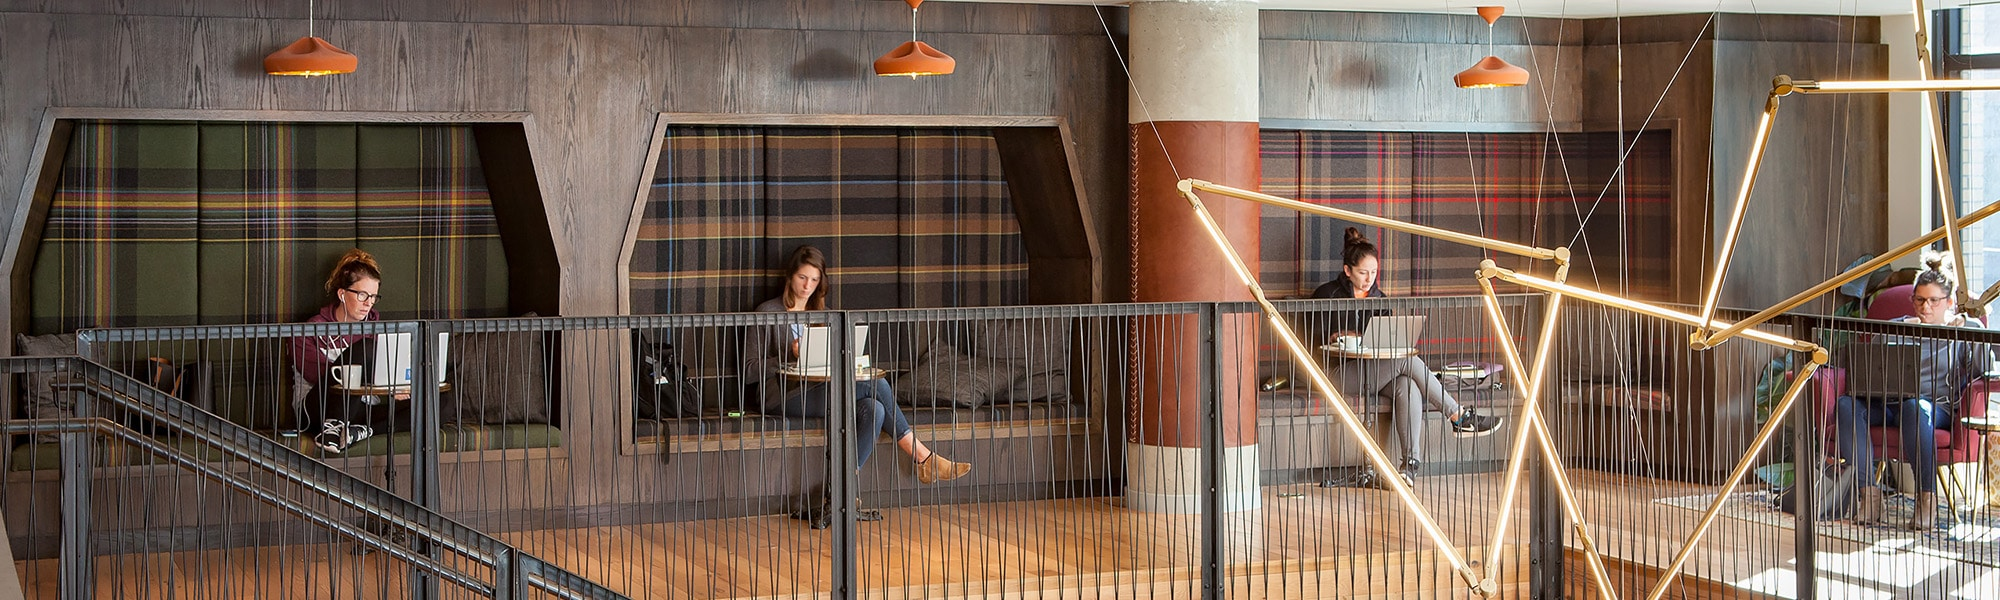 Co-Working Meets Retail: Offices Reimagined